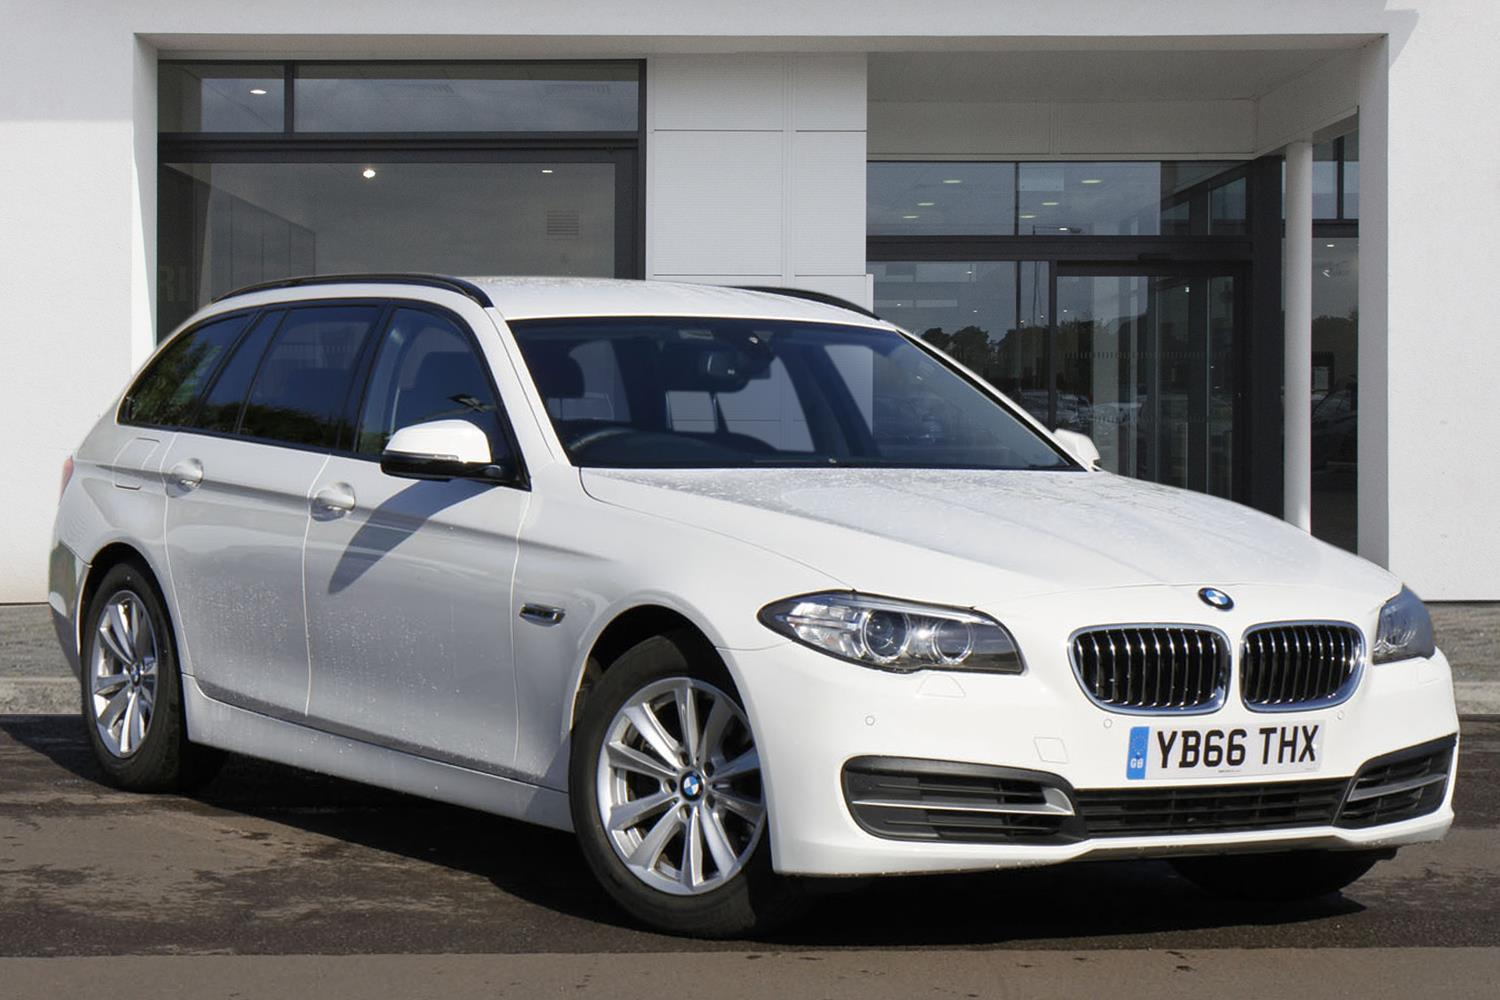 BMW 5 Series Touring YB66THX - Image 2